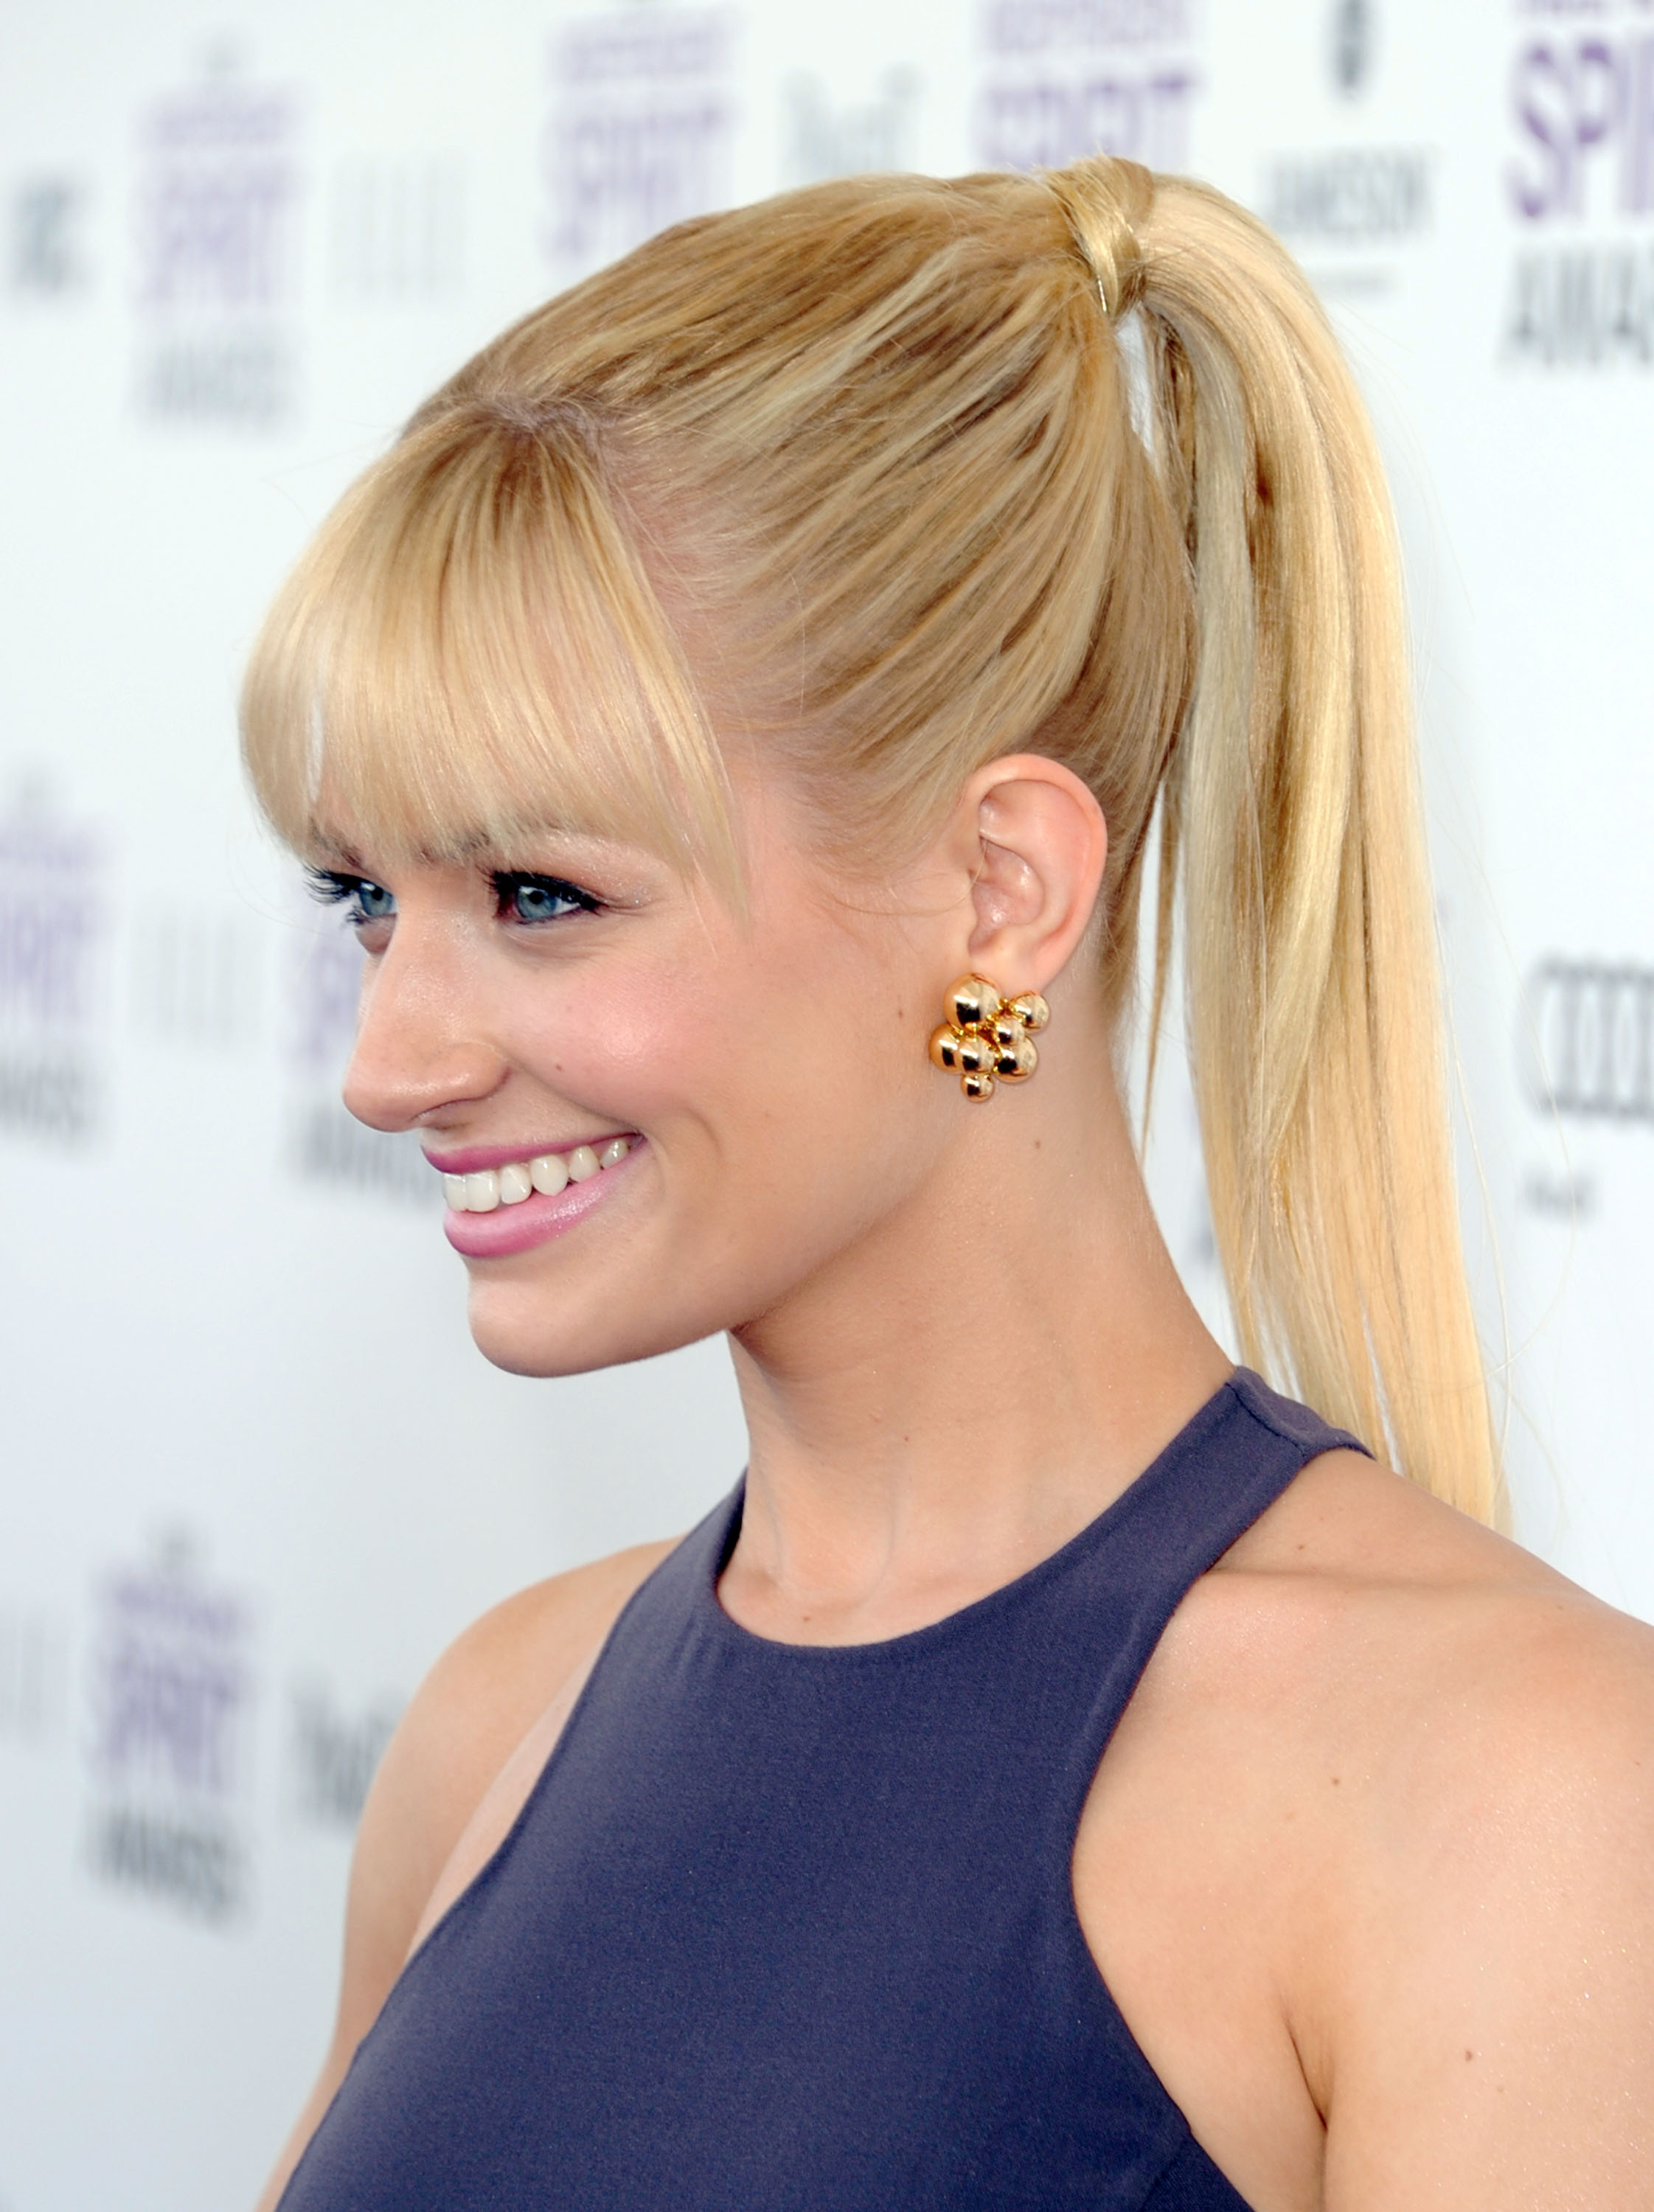 2243x3000 - Beth Behrs Wallpapers 23